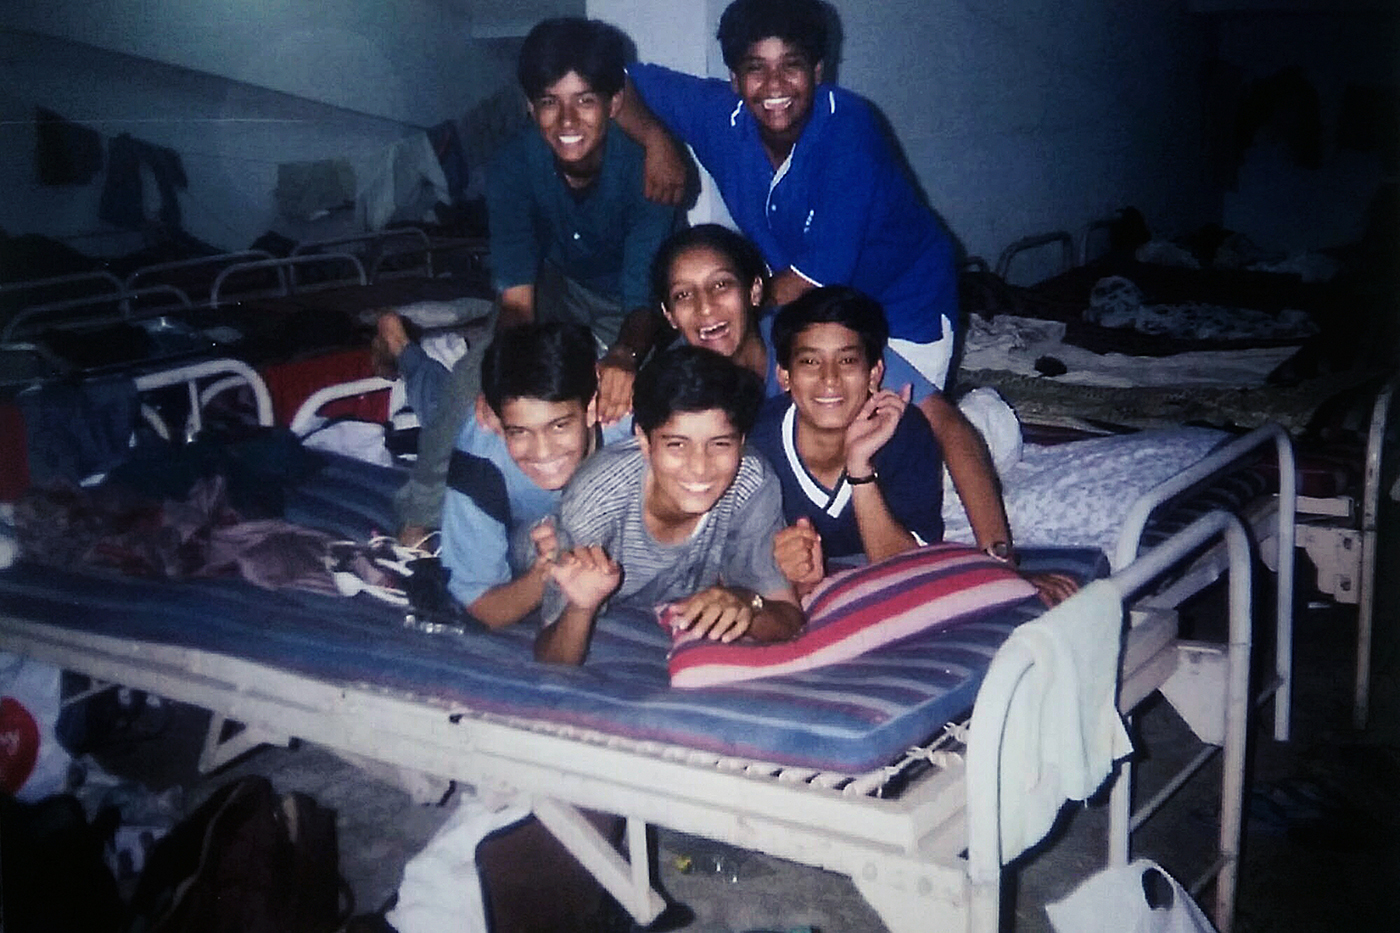 The author (centre) with other junior cricketers in a dormitory during an U-15 tournament in Jamshedpur